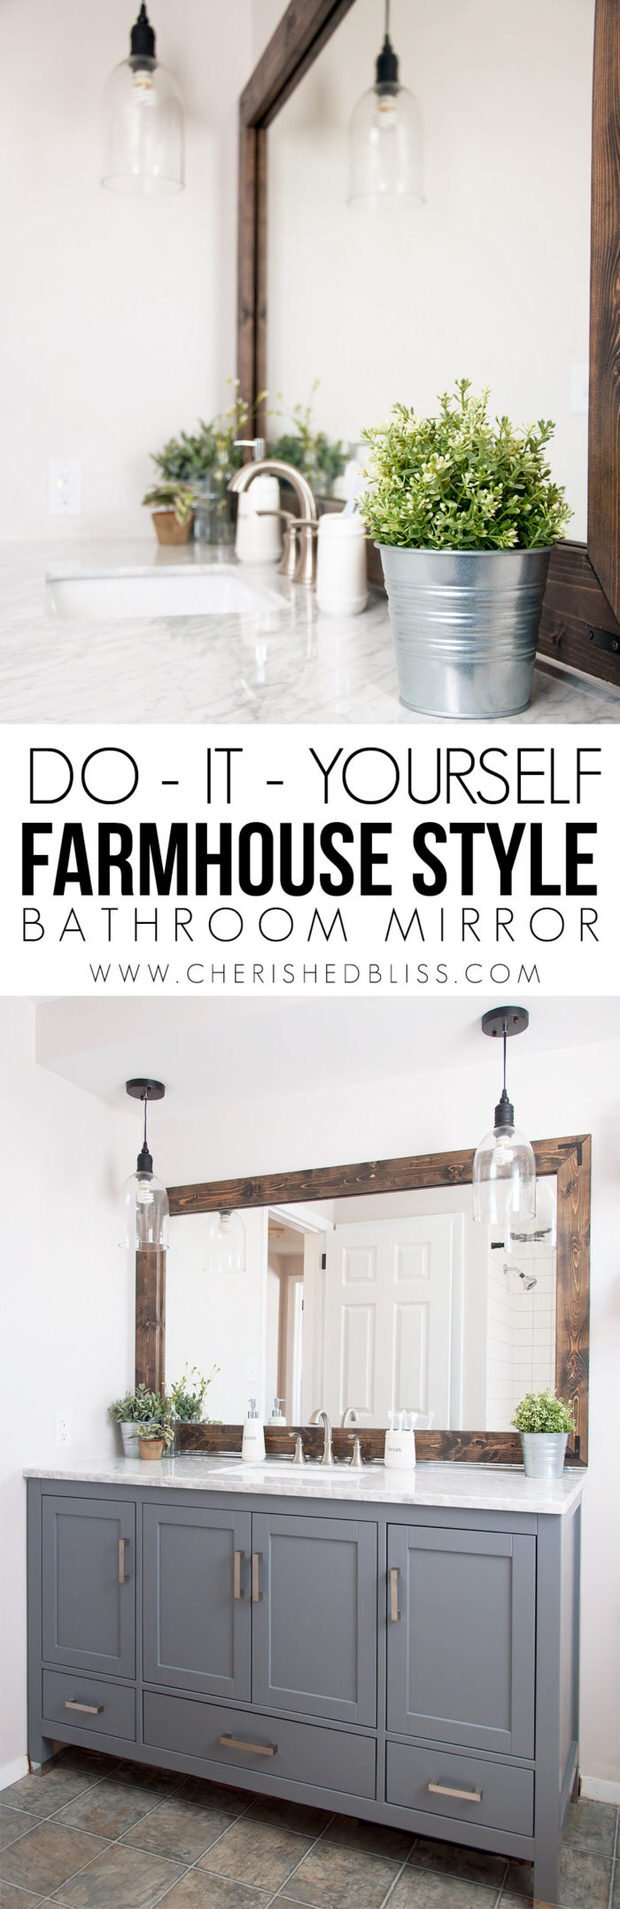 DIY Modern Farmhouse Decor Projects | Decorating Your Small Space